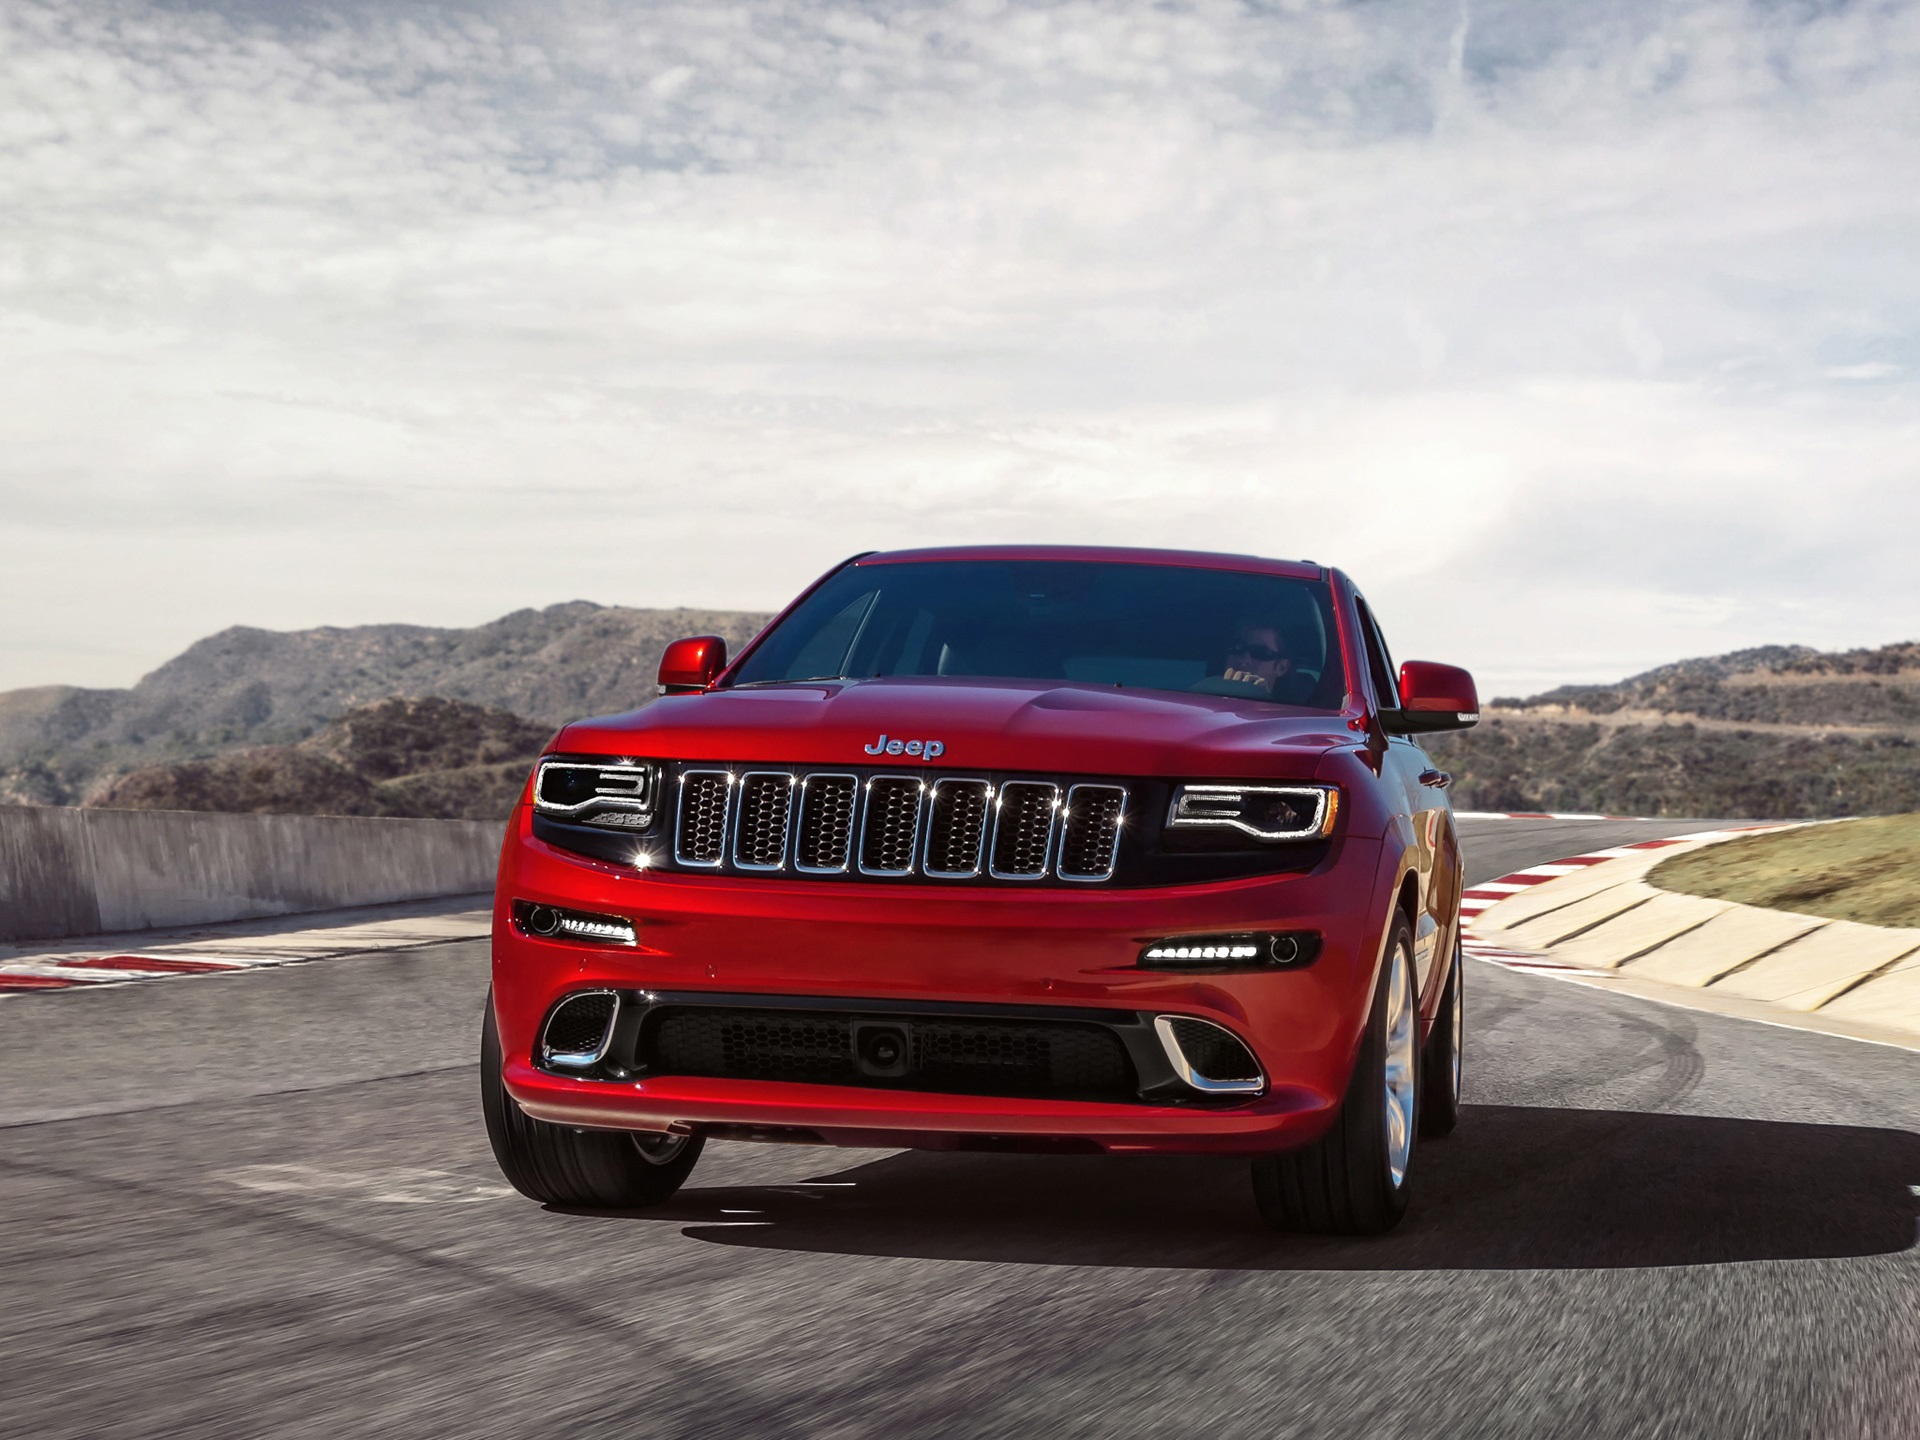 Wallpaper Jeep Grand Cherokee Srt Red Car Front View 1920x1440 Hd